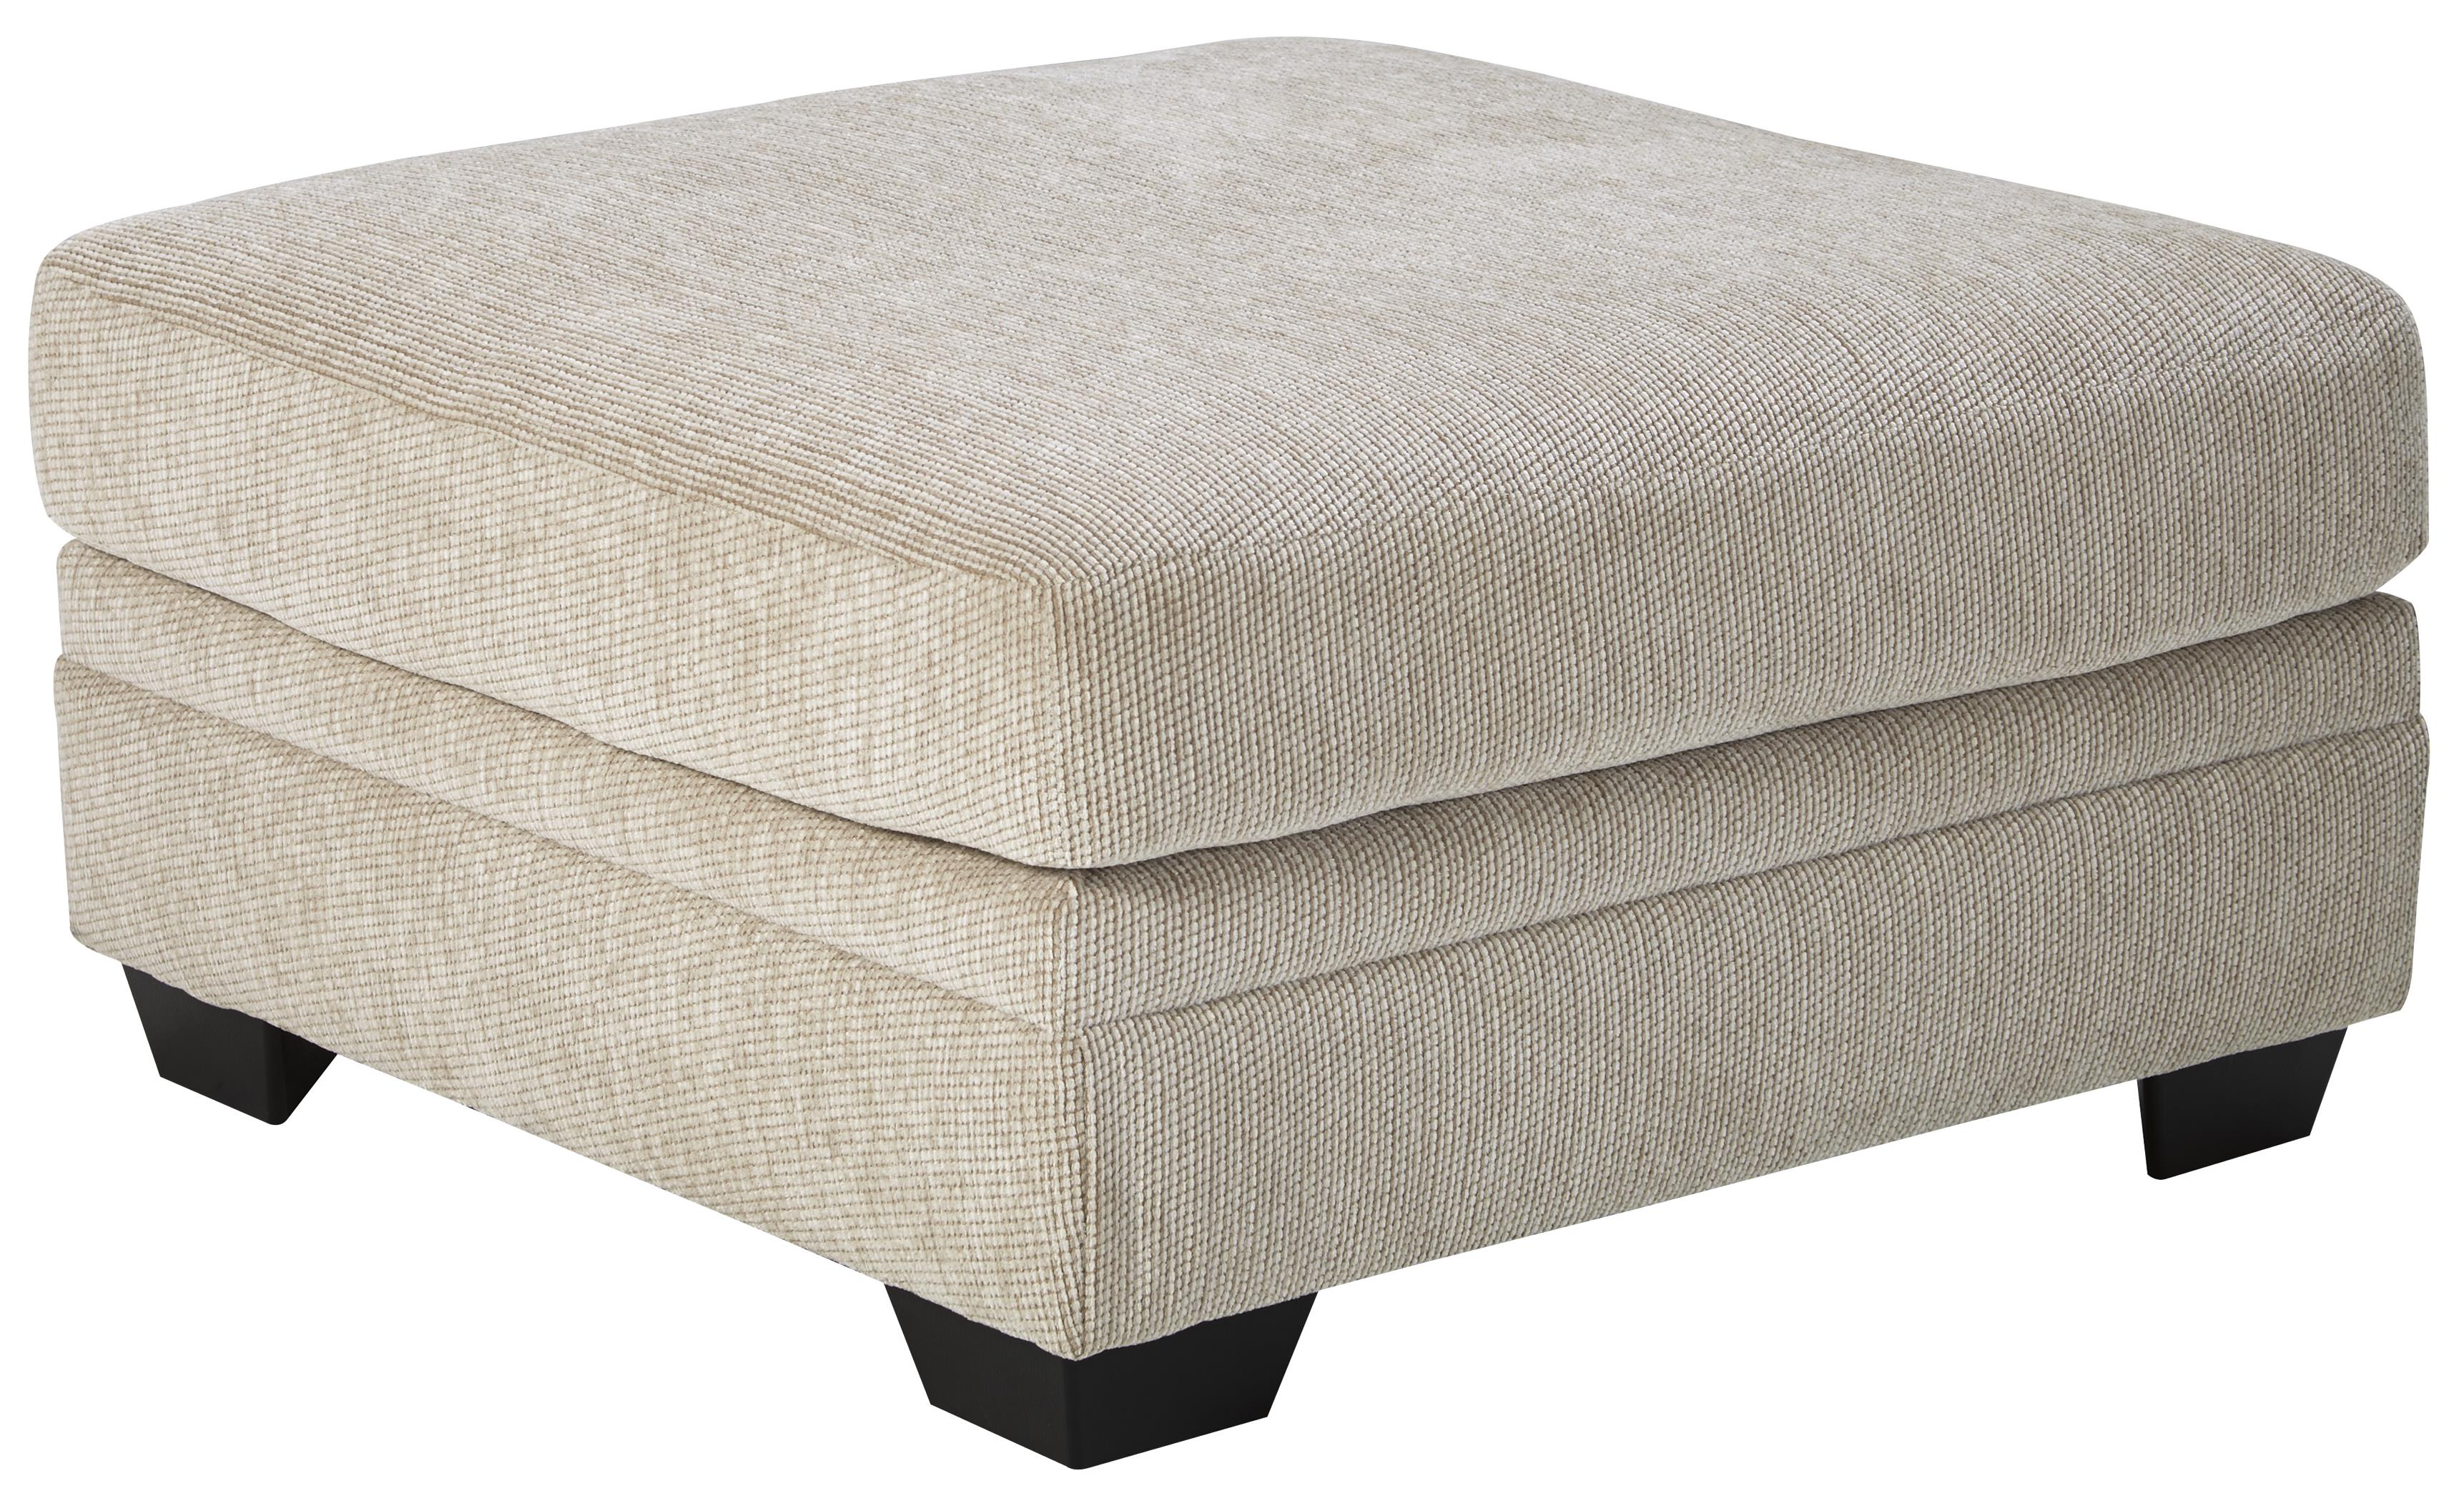 Benchcraft Ameer Oversized Accent Ottoman - Item Number: 8180608